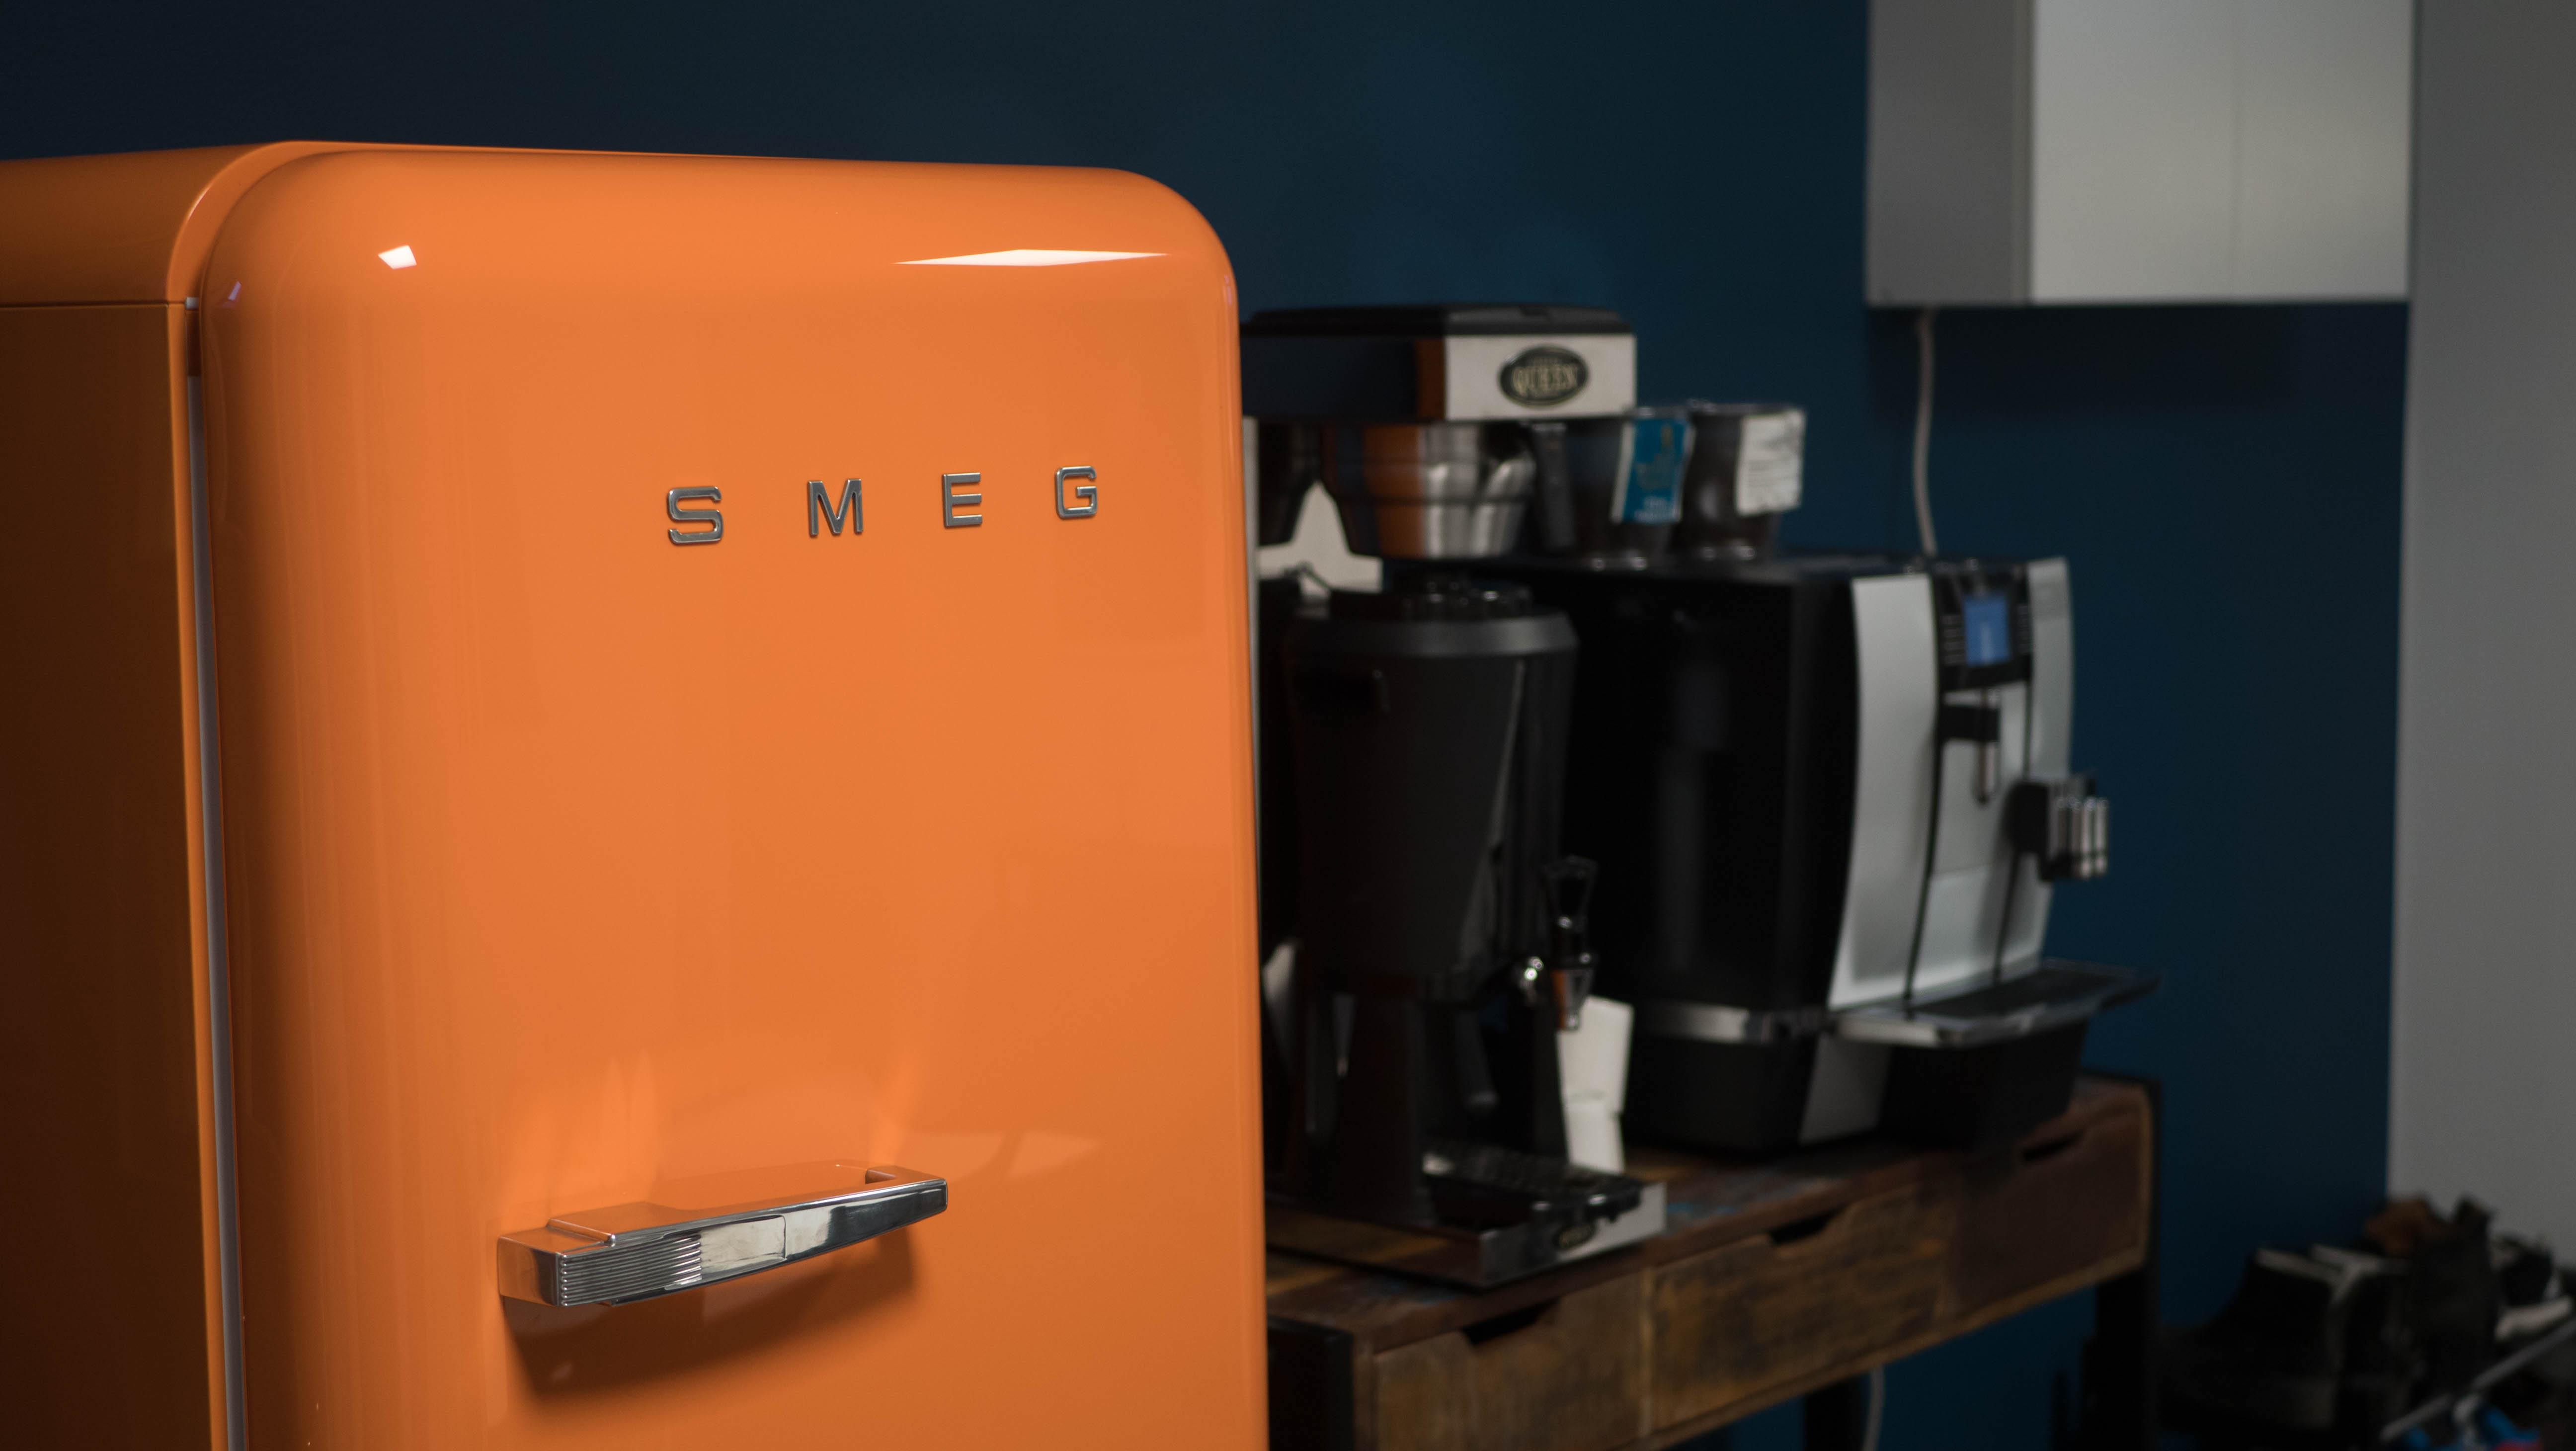 Our beloved Smeg refrigerator